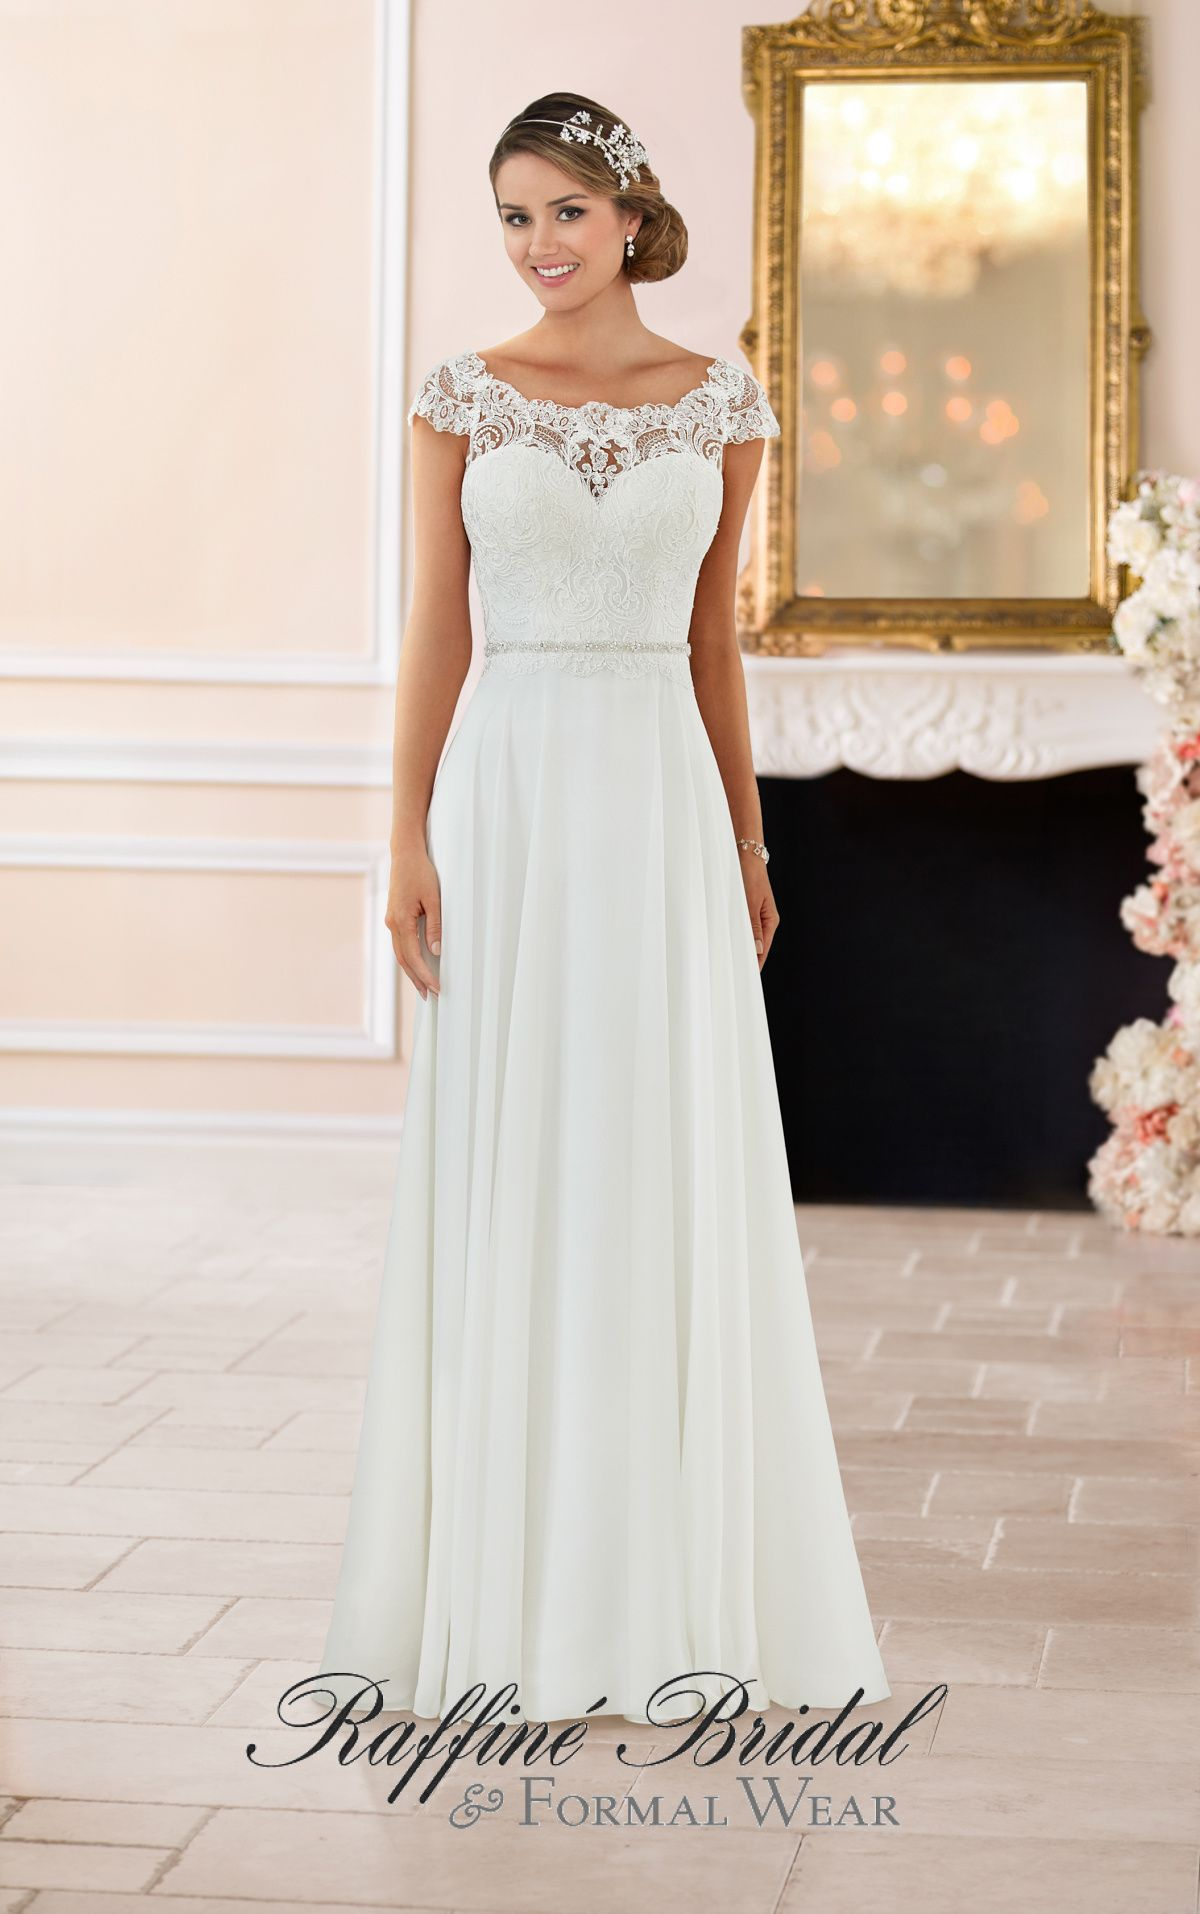 c1e35c6d8e Stella York #6365 - This off the shoulder lace back wedding dress features  a mix of classic lace and soft chiffon that was made for walking down the  aisle!